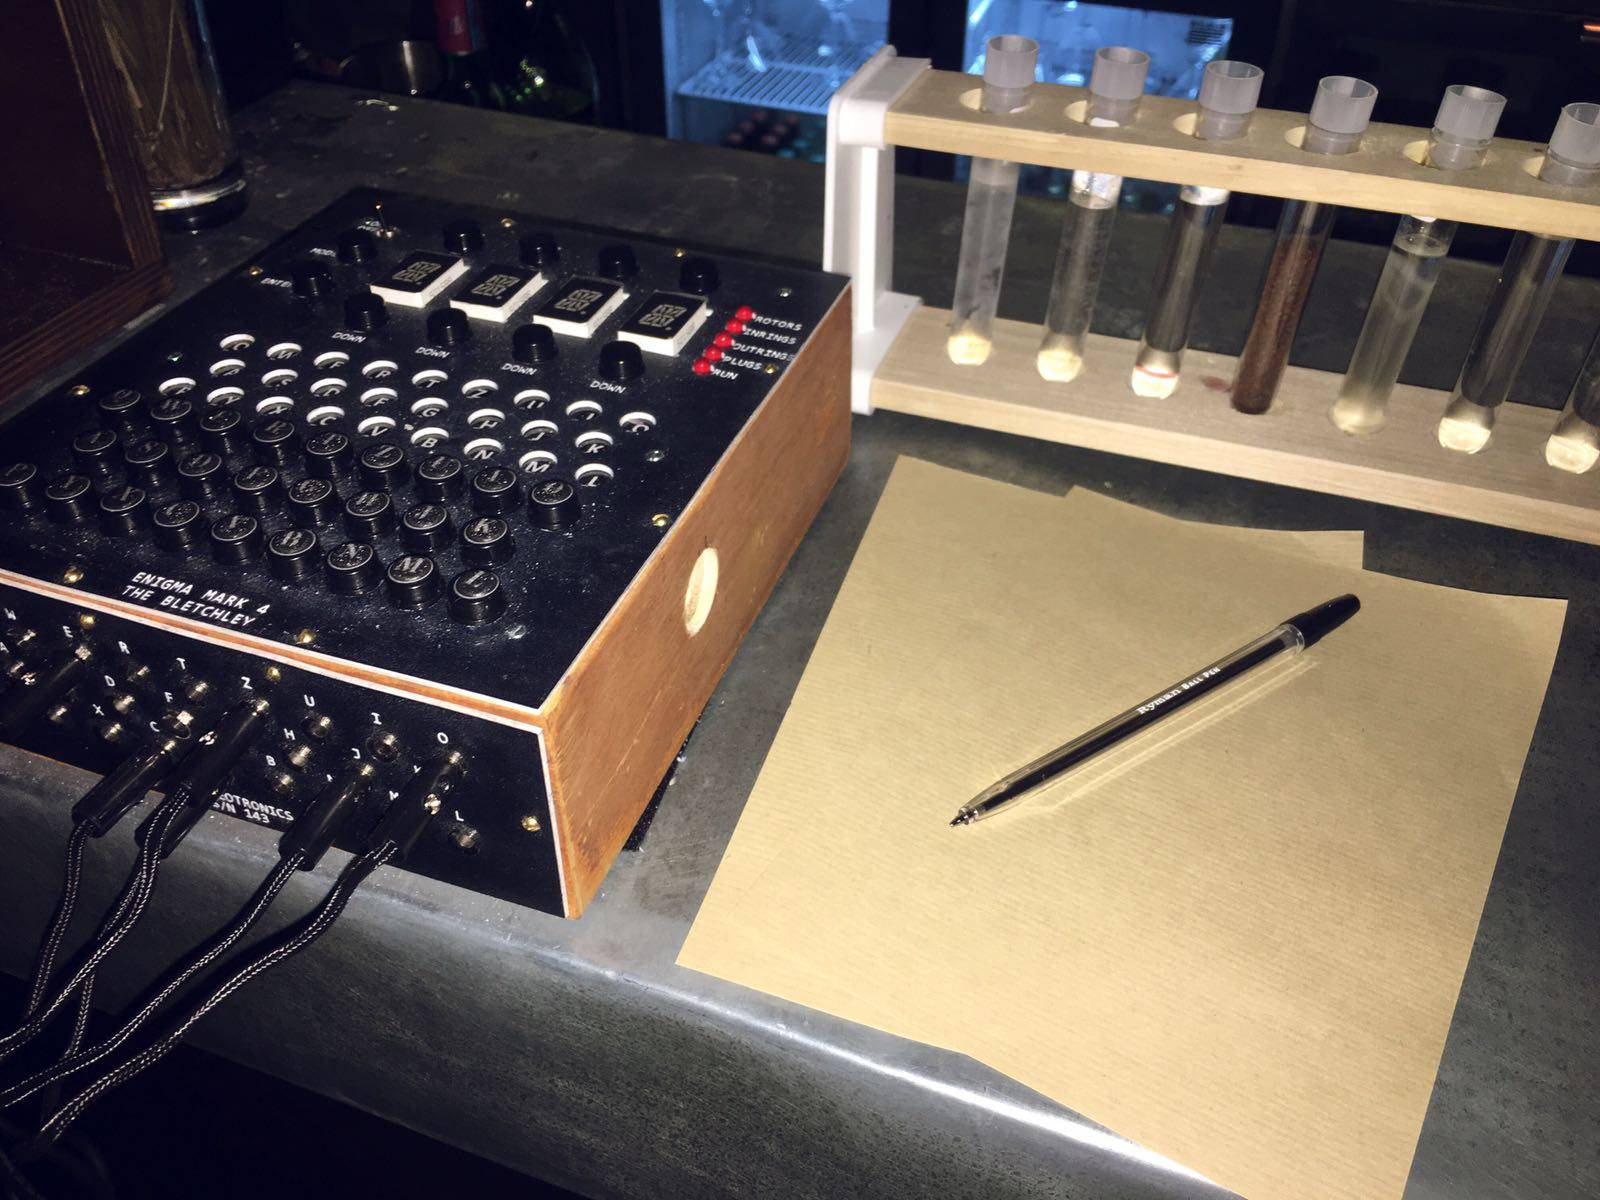 Enigma Machines @ The Bletchley: London's Code-Cracking Cocktail Bar